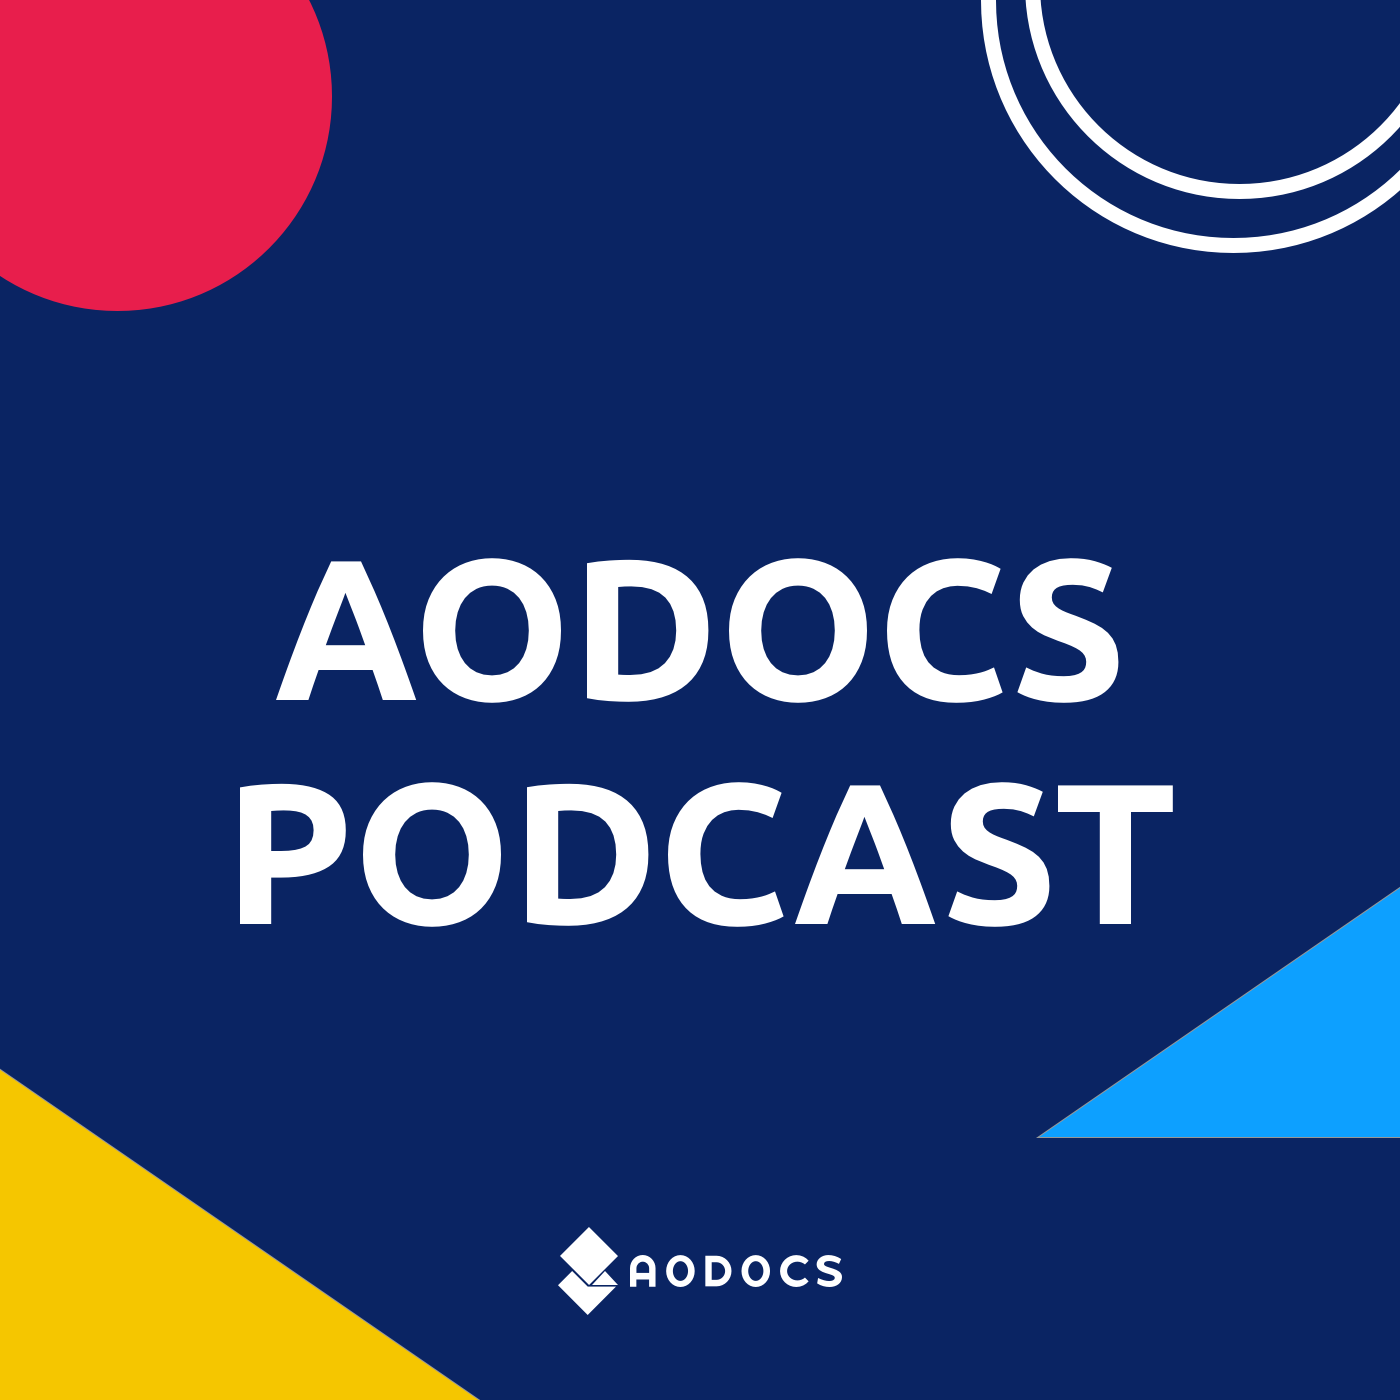 AODocs Podcast Logo